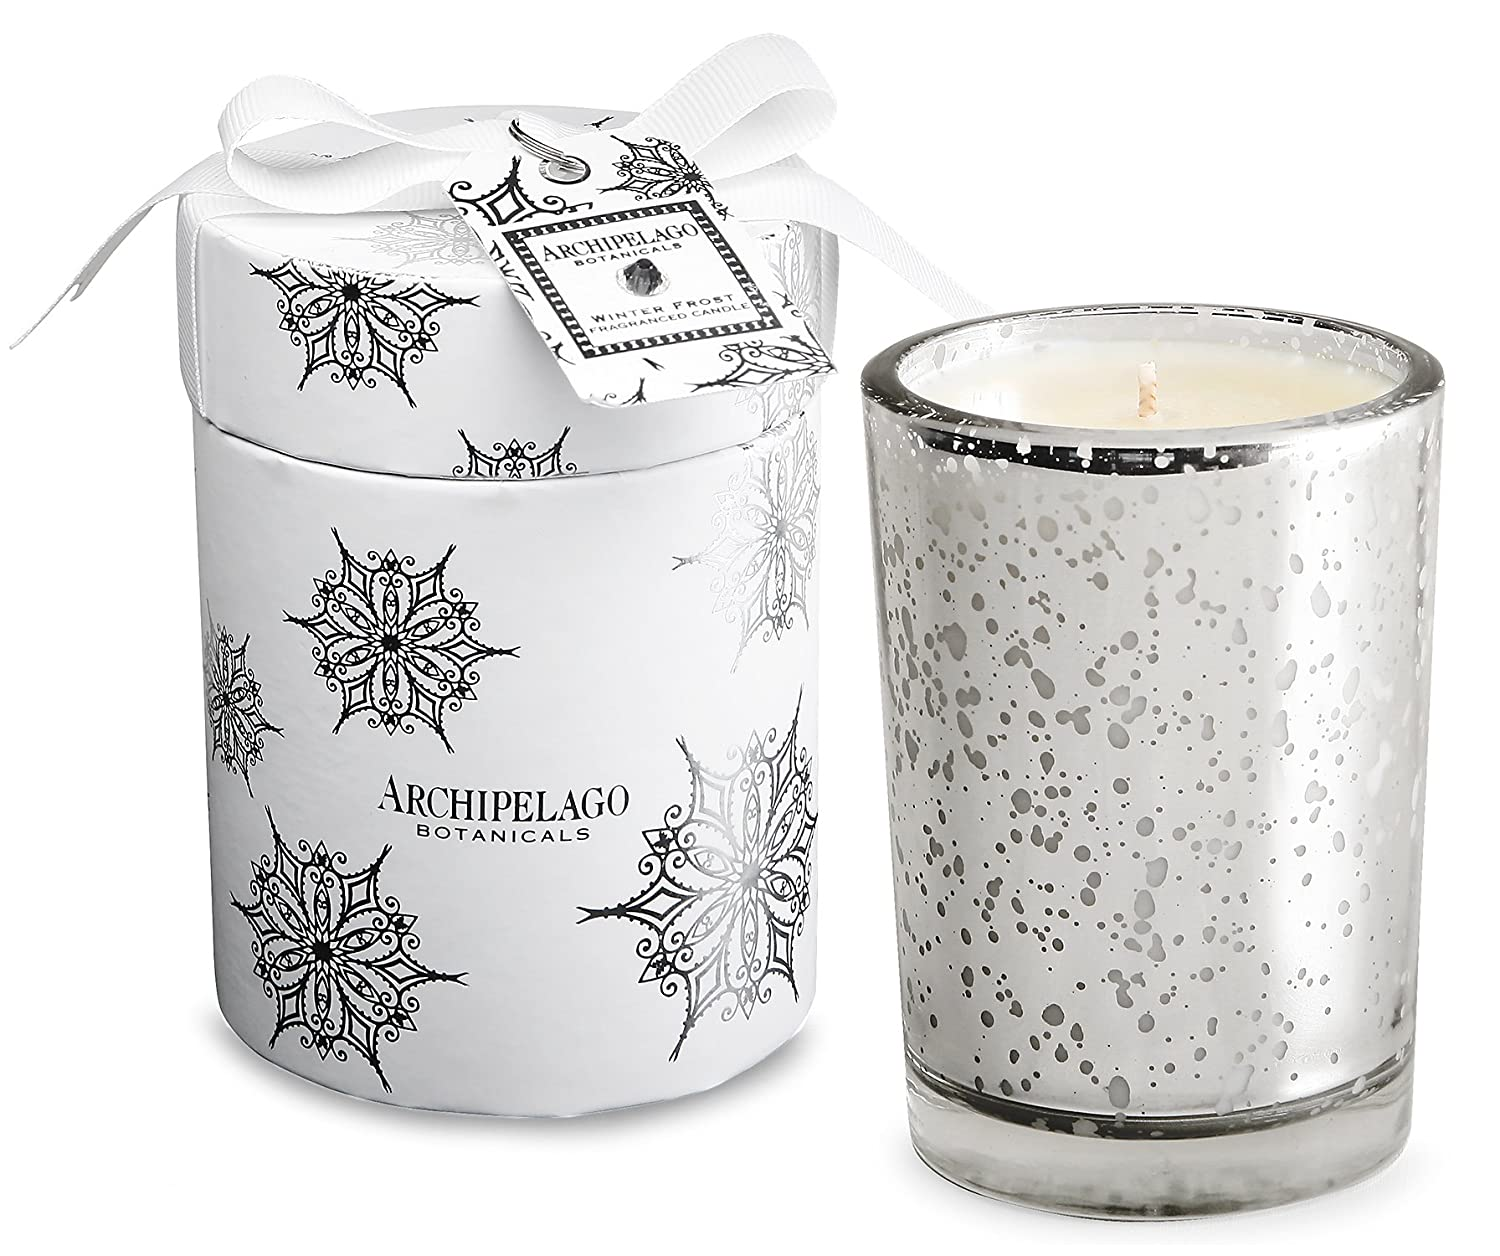 Archipelago Botanicals Winter Frost Round Box Candle